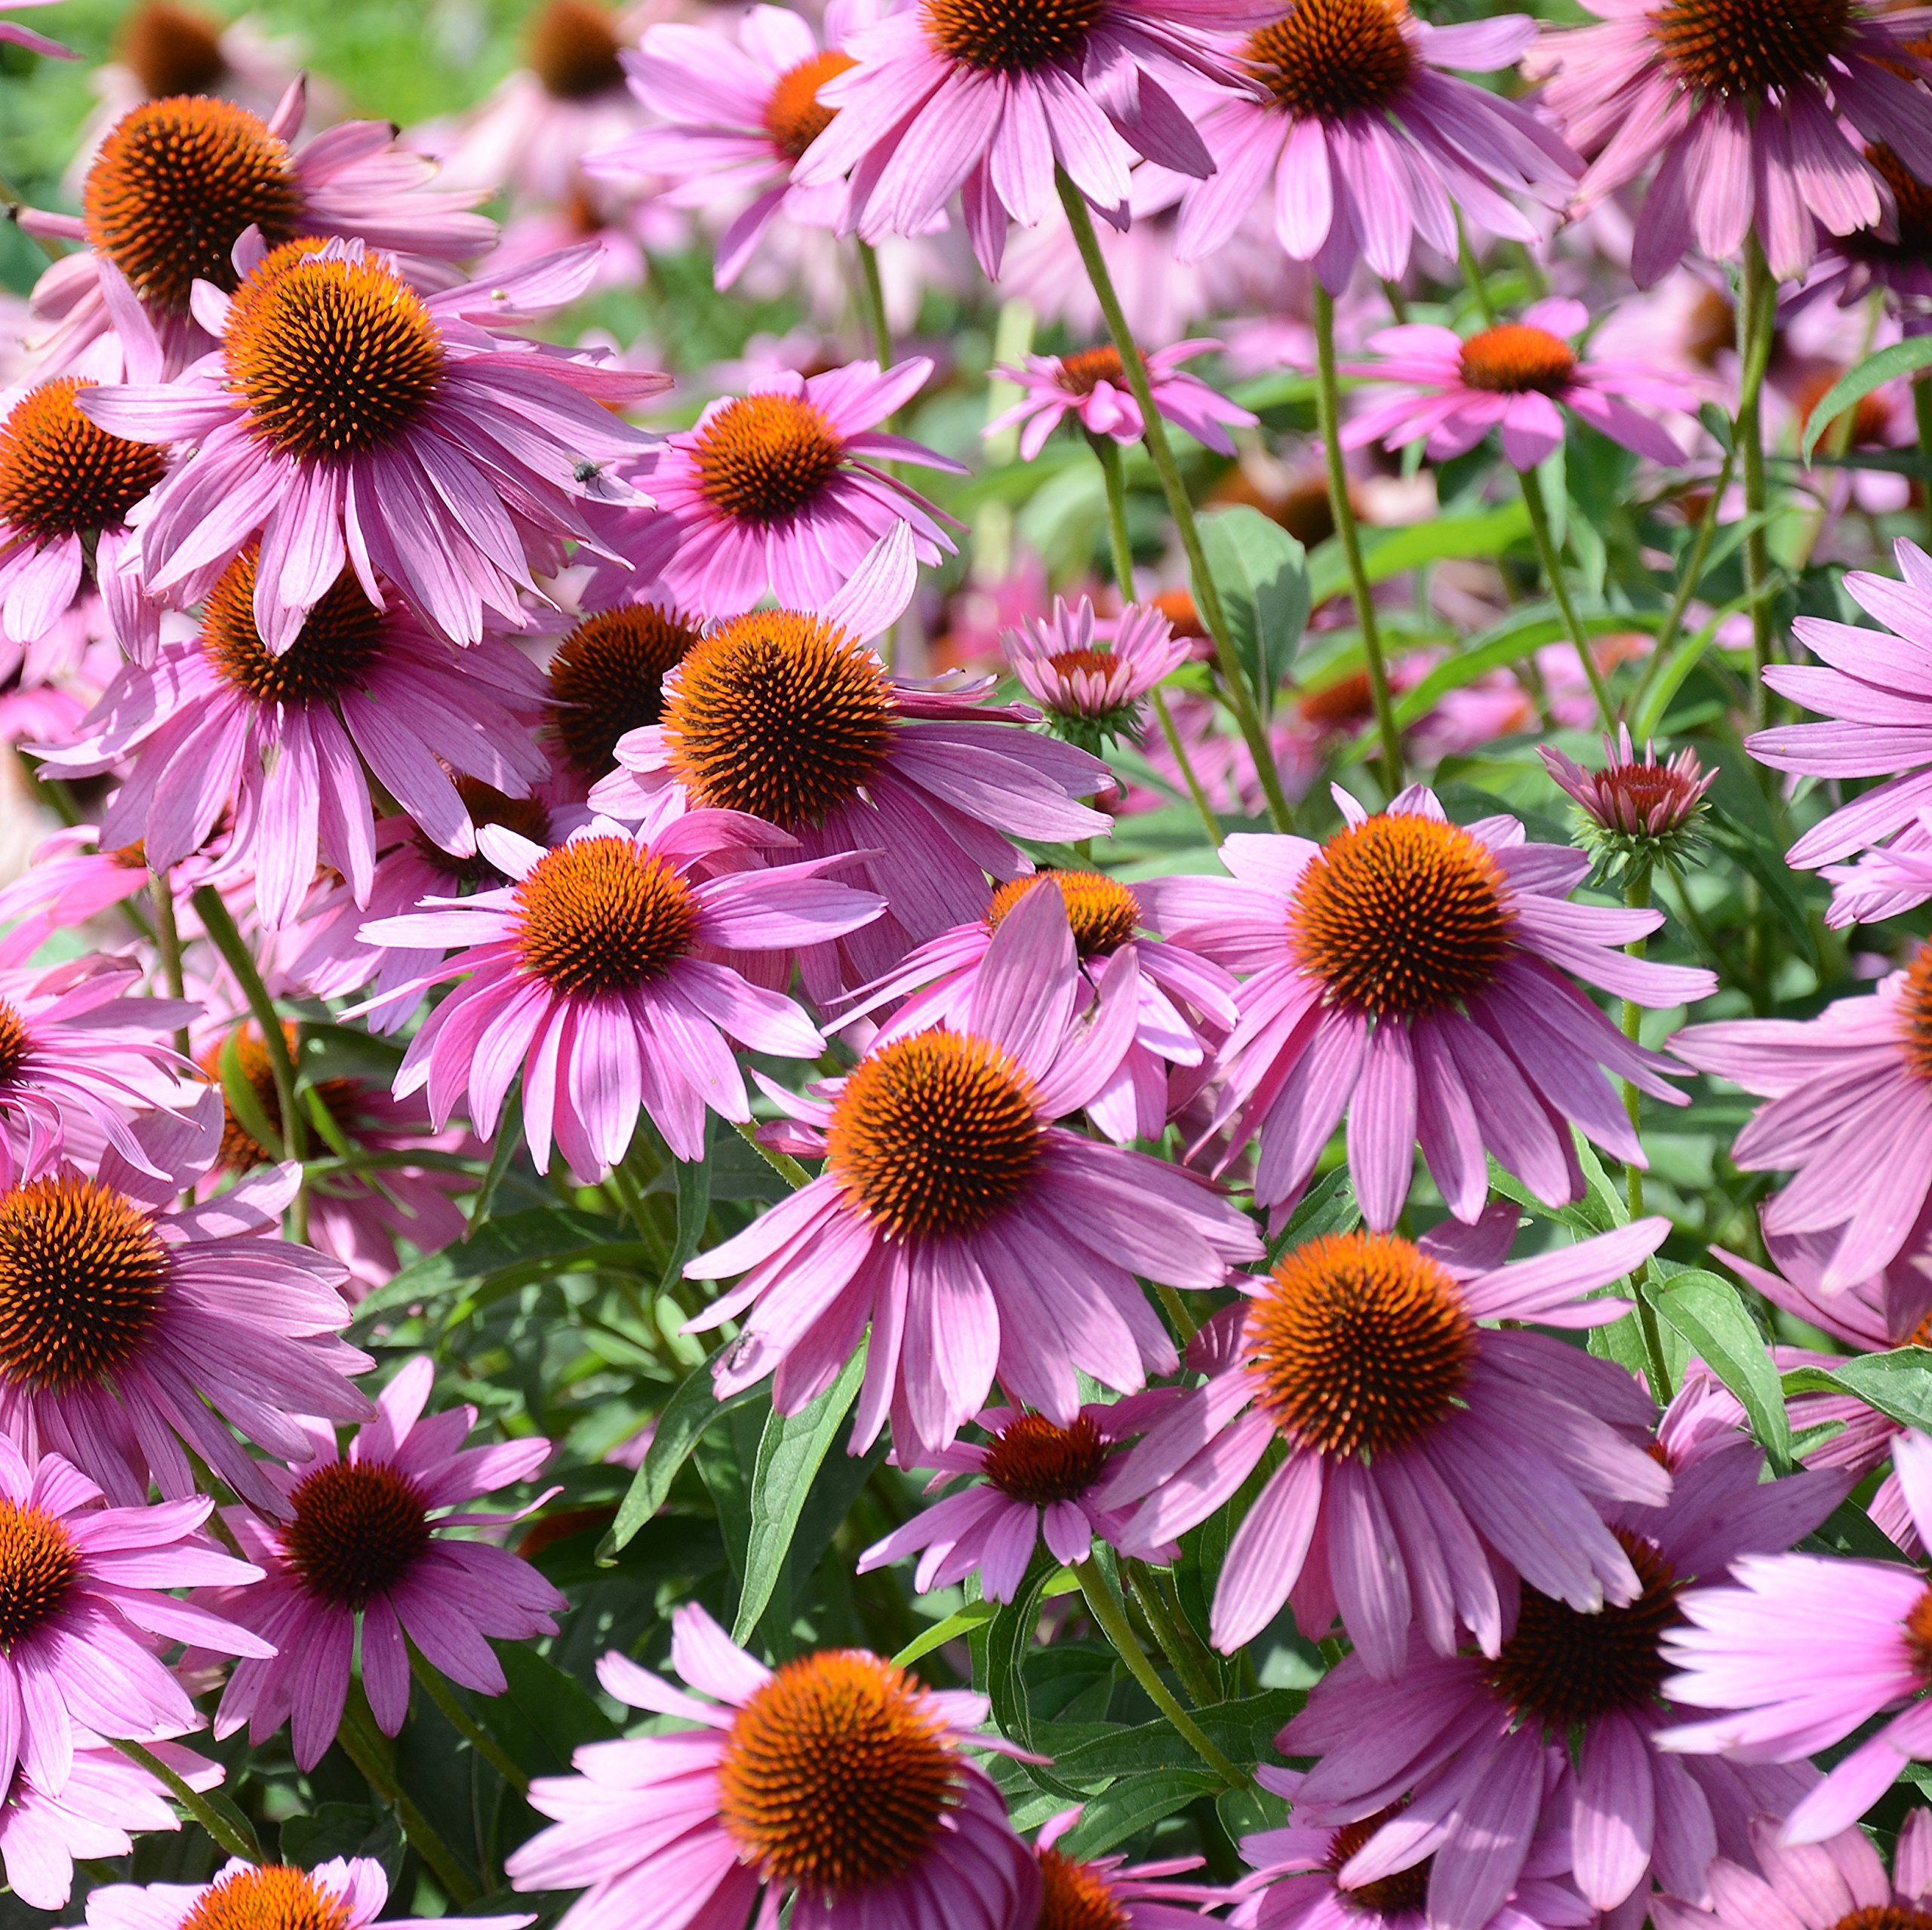 Outsidepride Echinacea Purple Coneflower Seed - 1 LB by Outsidepride